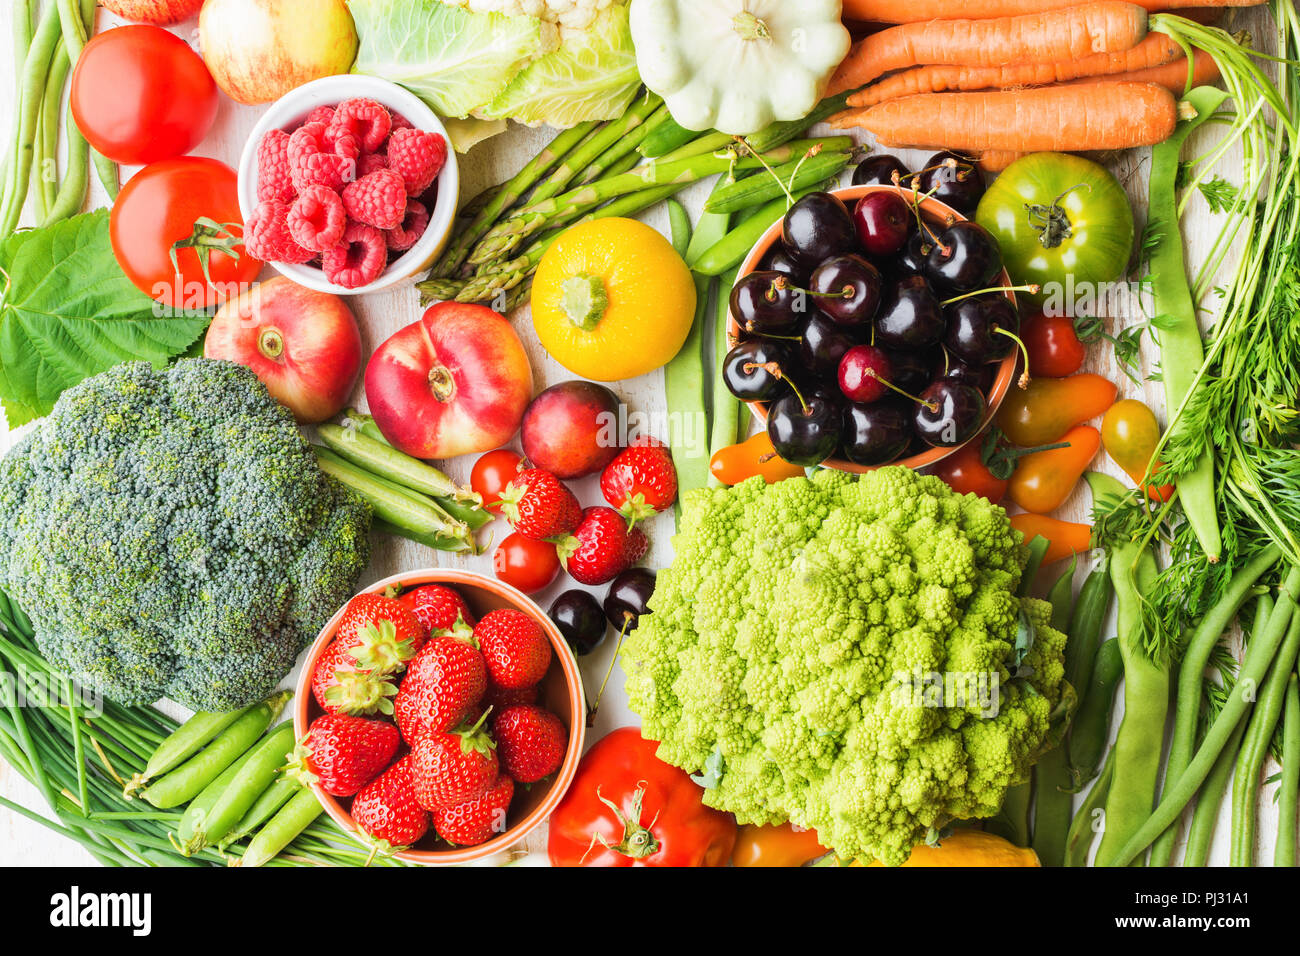 Summer fruits vegetables berries background, apples cherries peaches strawberries cabbage broccoli cauliflower squash tomatoes carrots spring beetroot, copy space, top view, selective focus Stock Photo